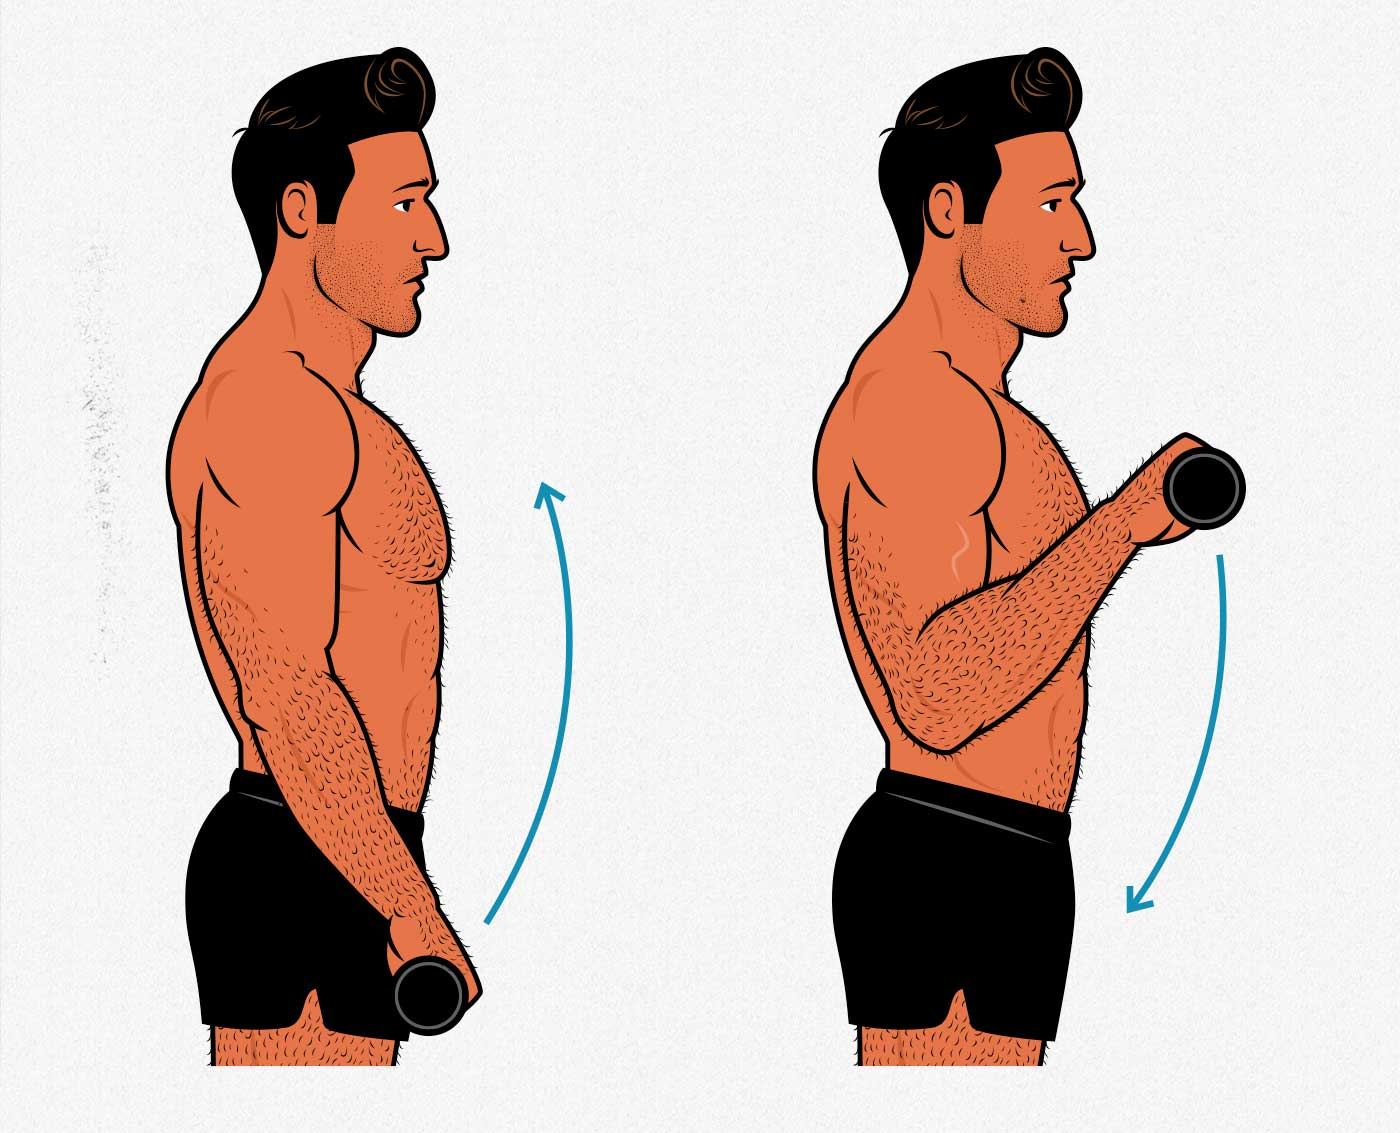 Illustration of a bodybuilder doing reverse curls to get bigger forearms.